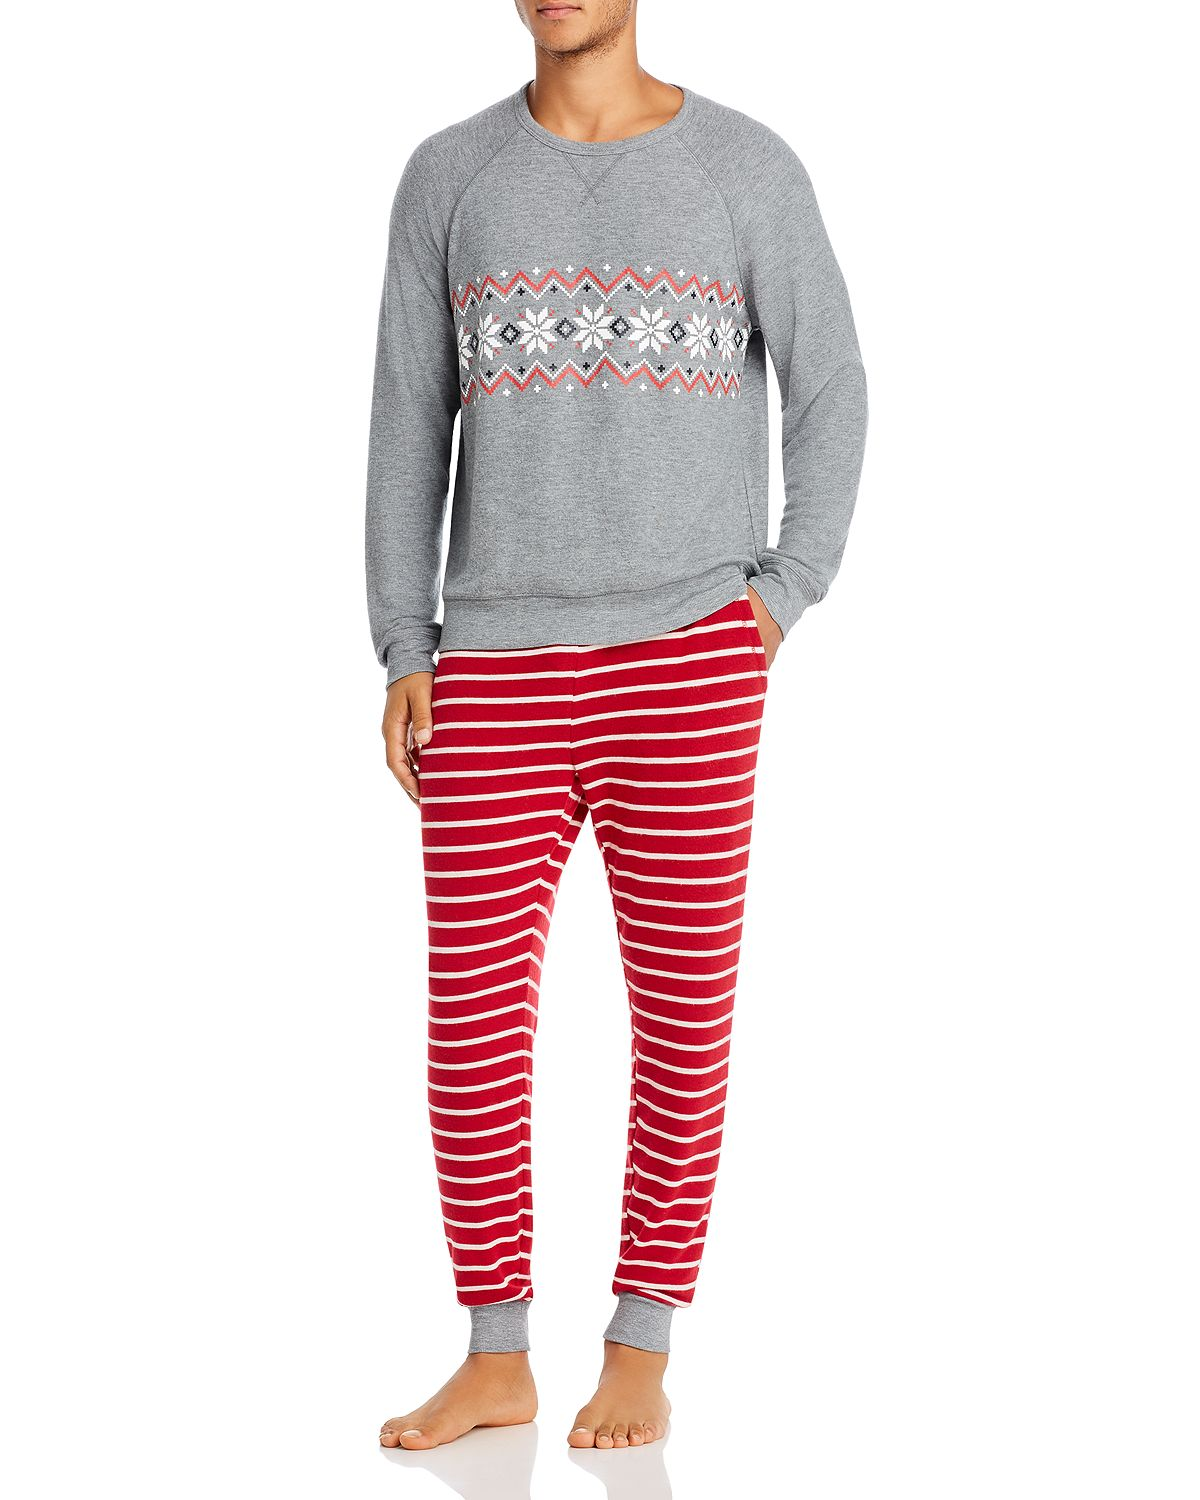 Pj Salvage Poinsettia-graphic & Striped Pj Set Red